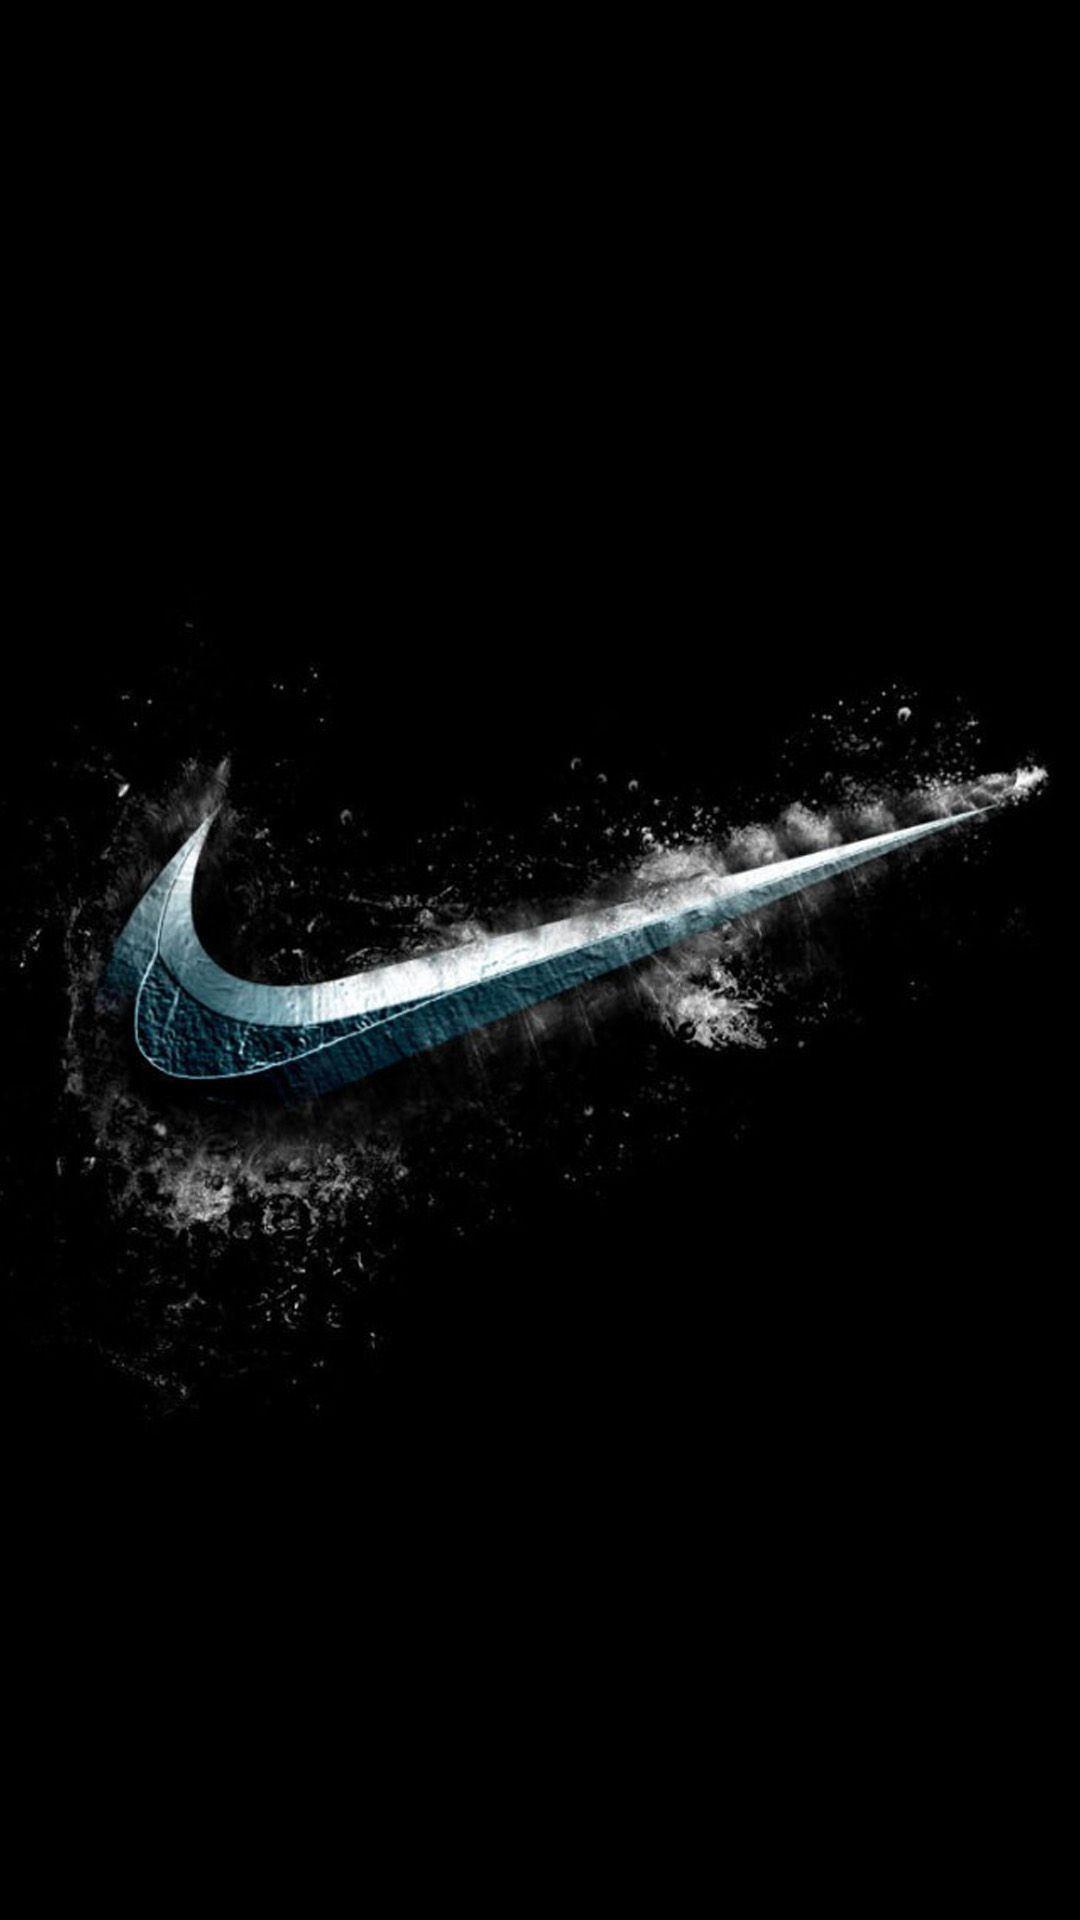 Galaxy Nike Wallpapers High Definition Hupages Download Iphone Wallpapers Nike Wallpaper Nike Logo Wallpapers Nike Wallpaper Iphone